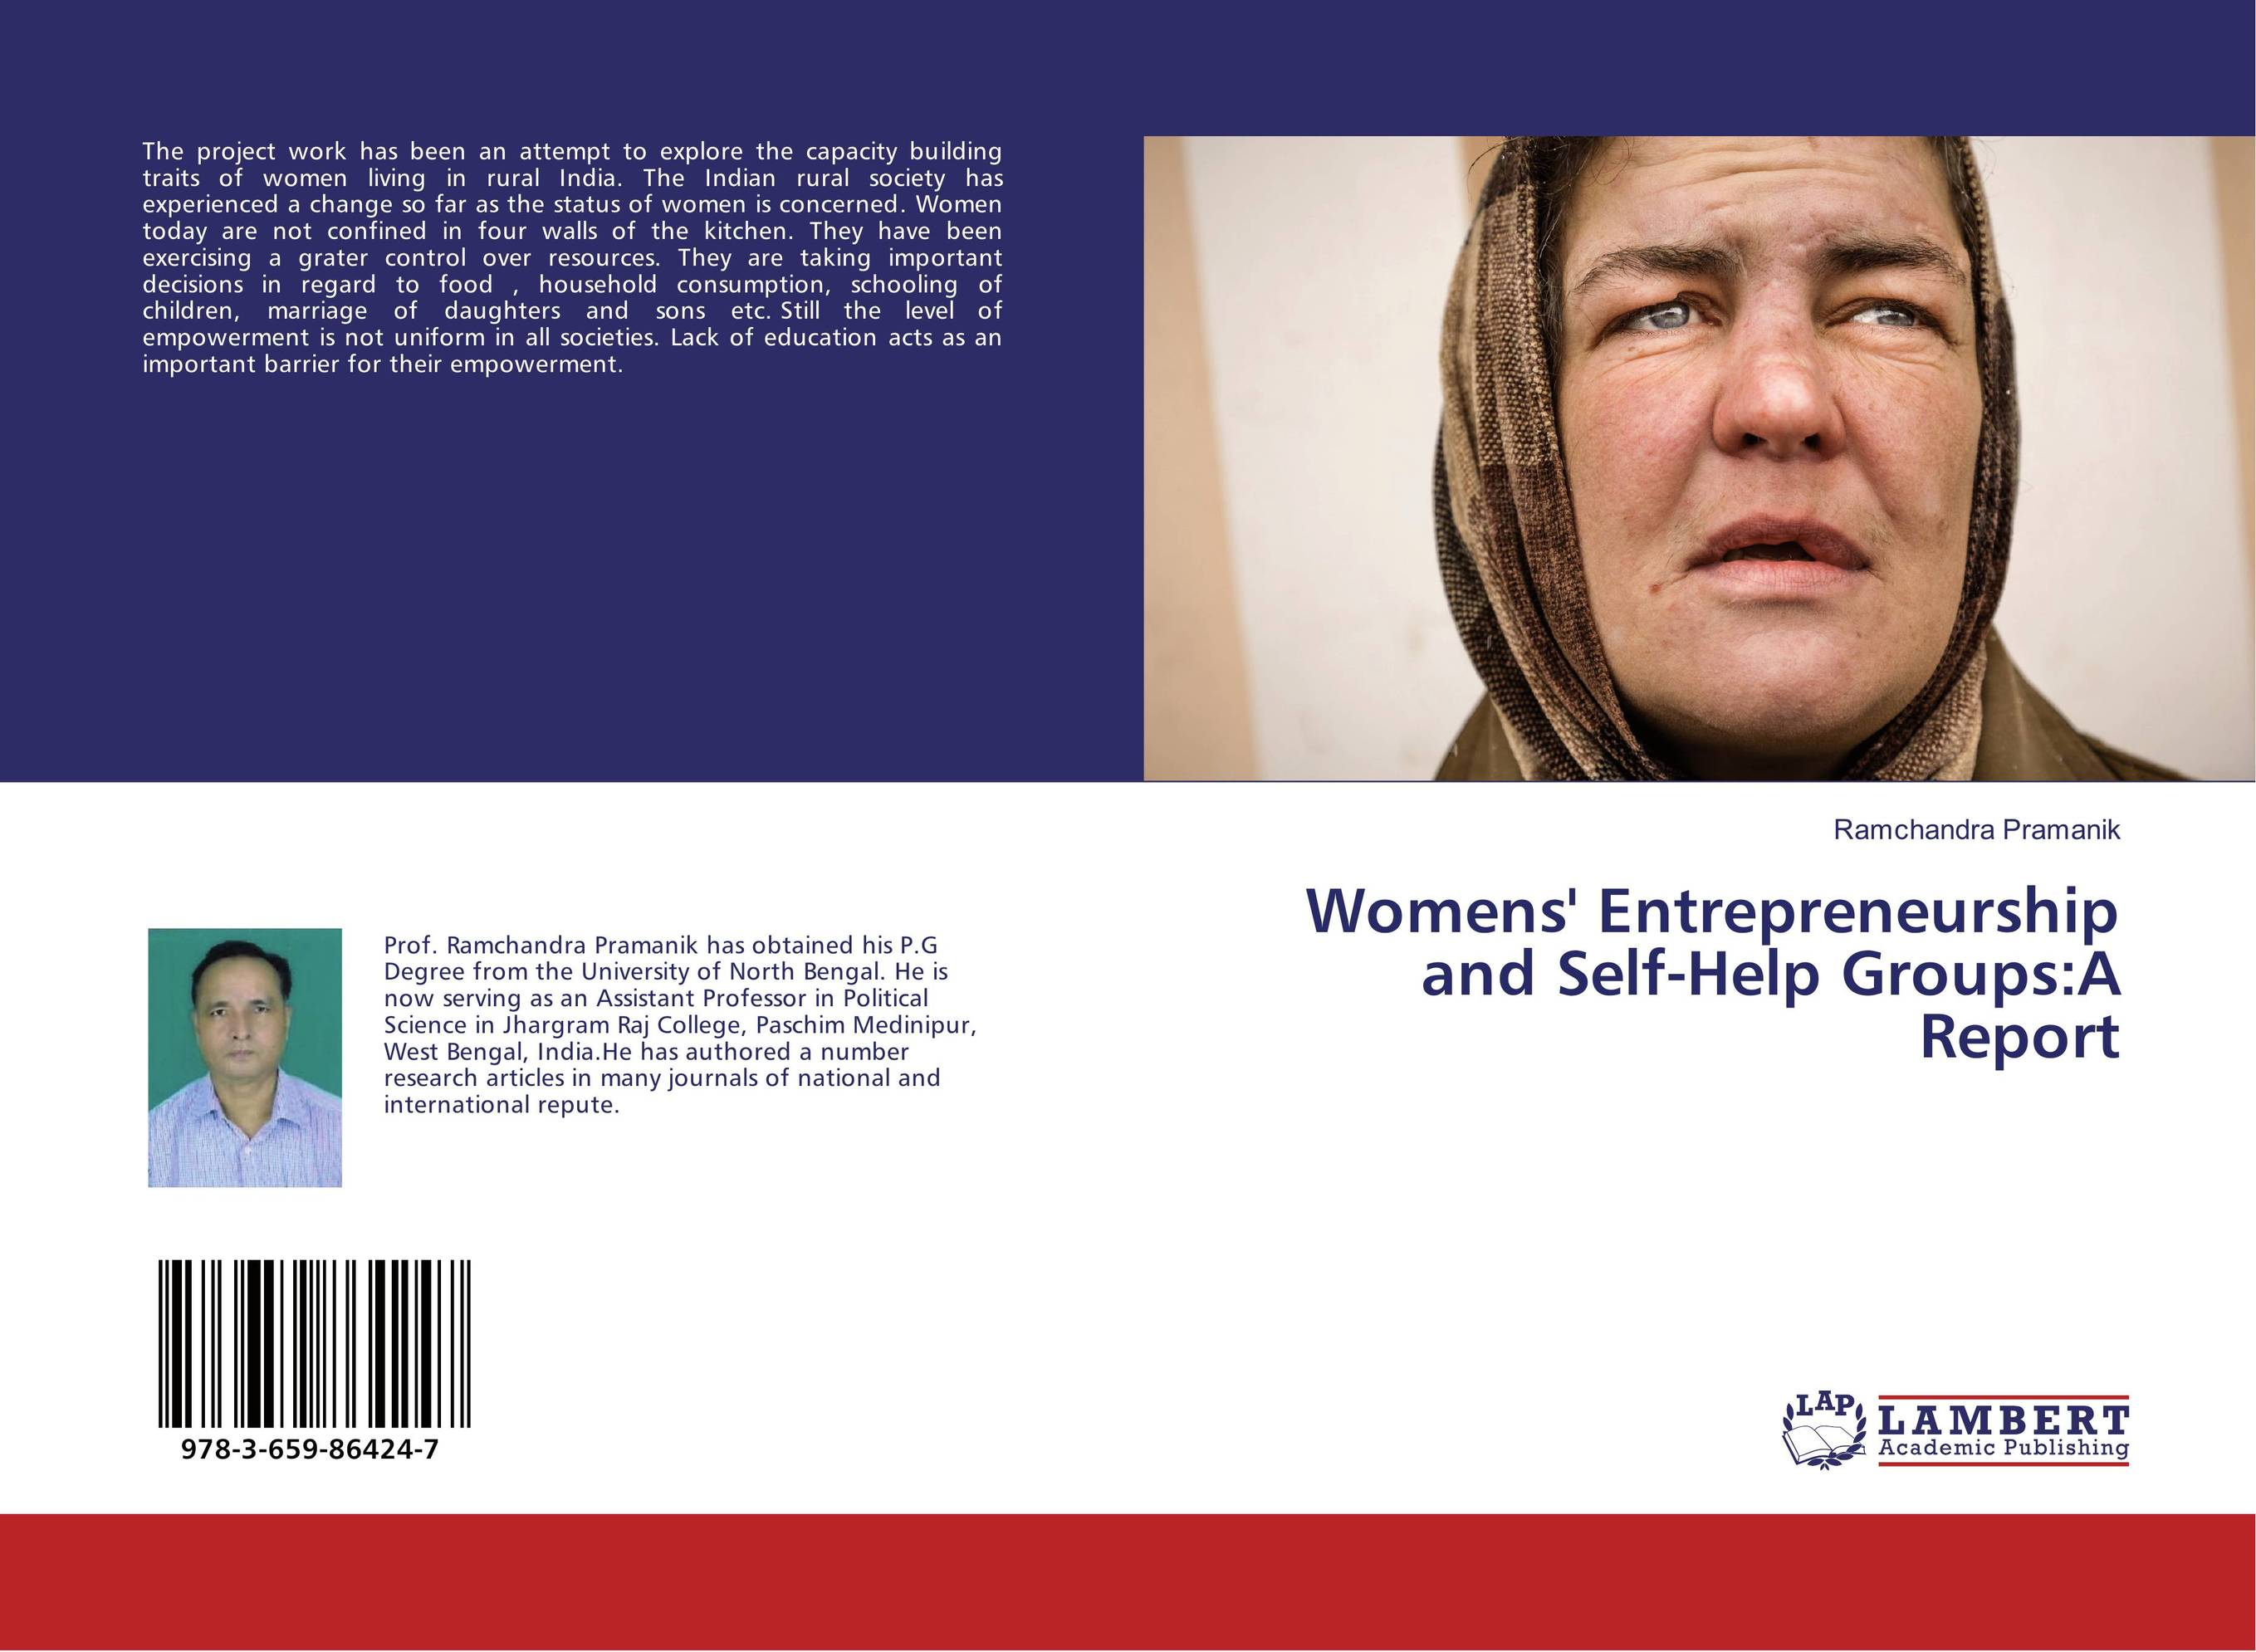 Womens' Entrepreneurship and Self-Help Groups:A Report